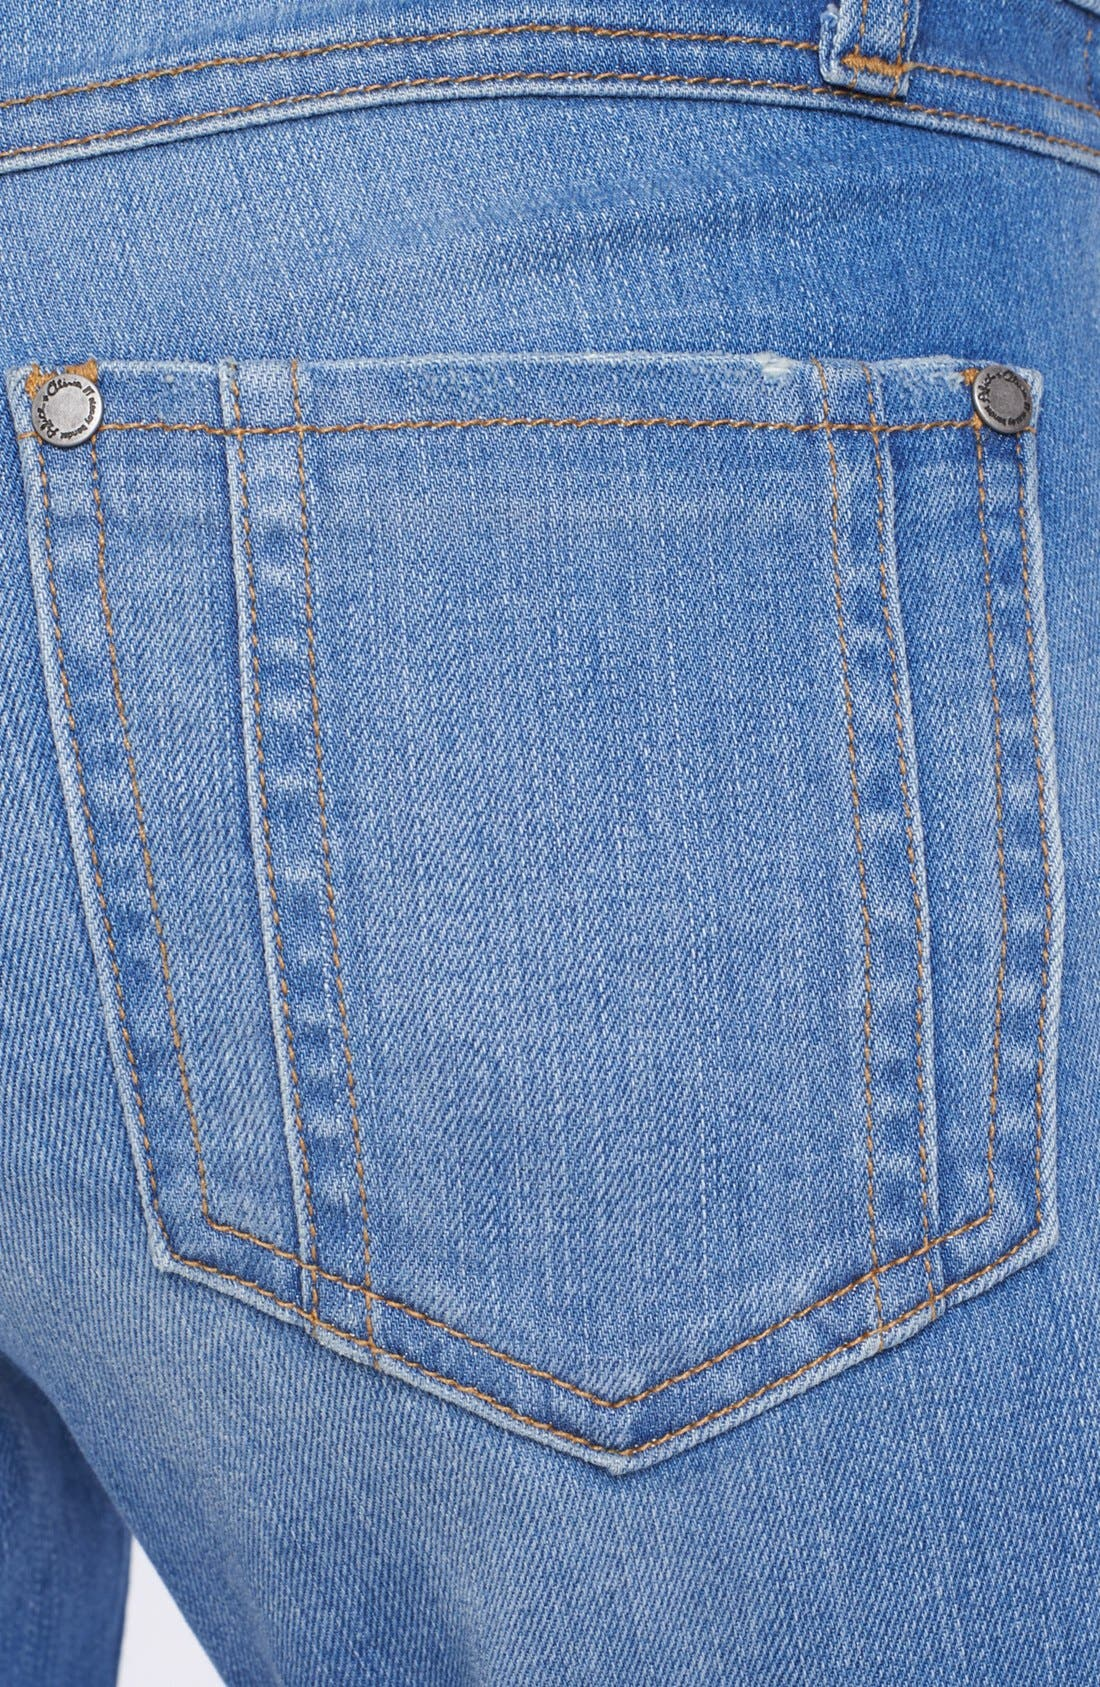 'Stacy' Distressed Bell Bottom Jeans,                             Alternate thumbnail 2, color,                             453